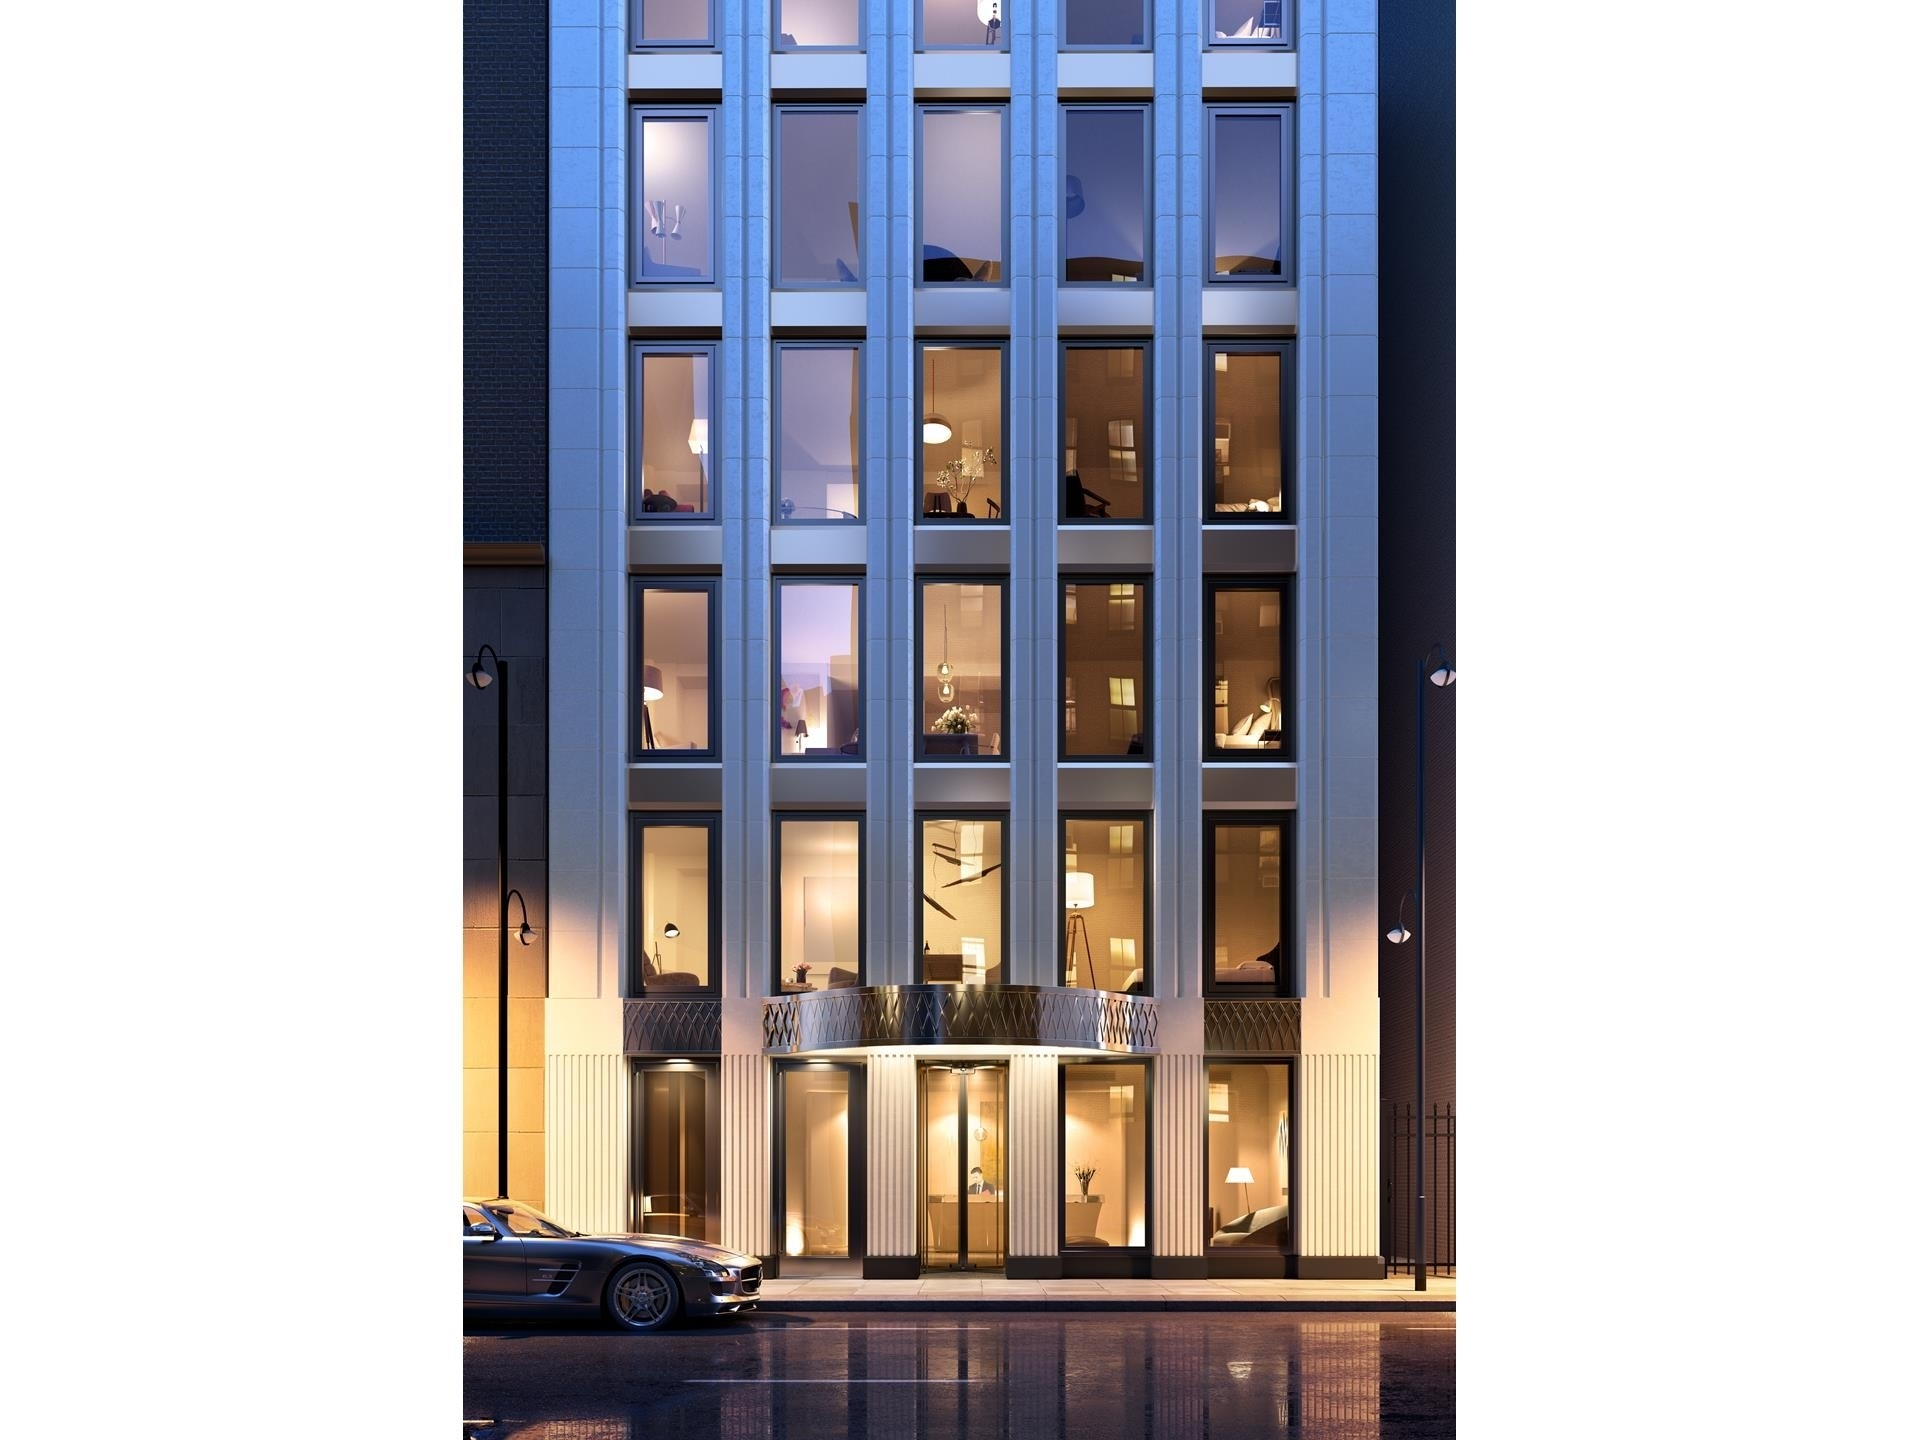 Property at 30 East 31st St, 38 NoMad, New York, NY 10016